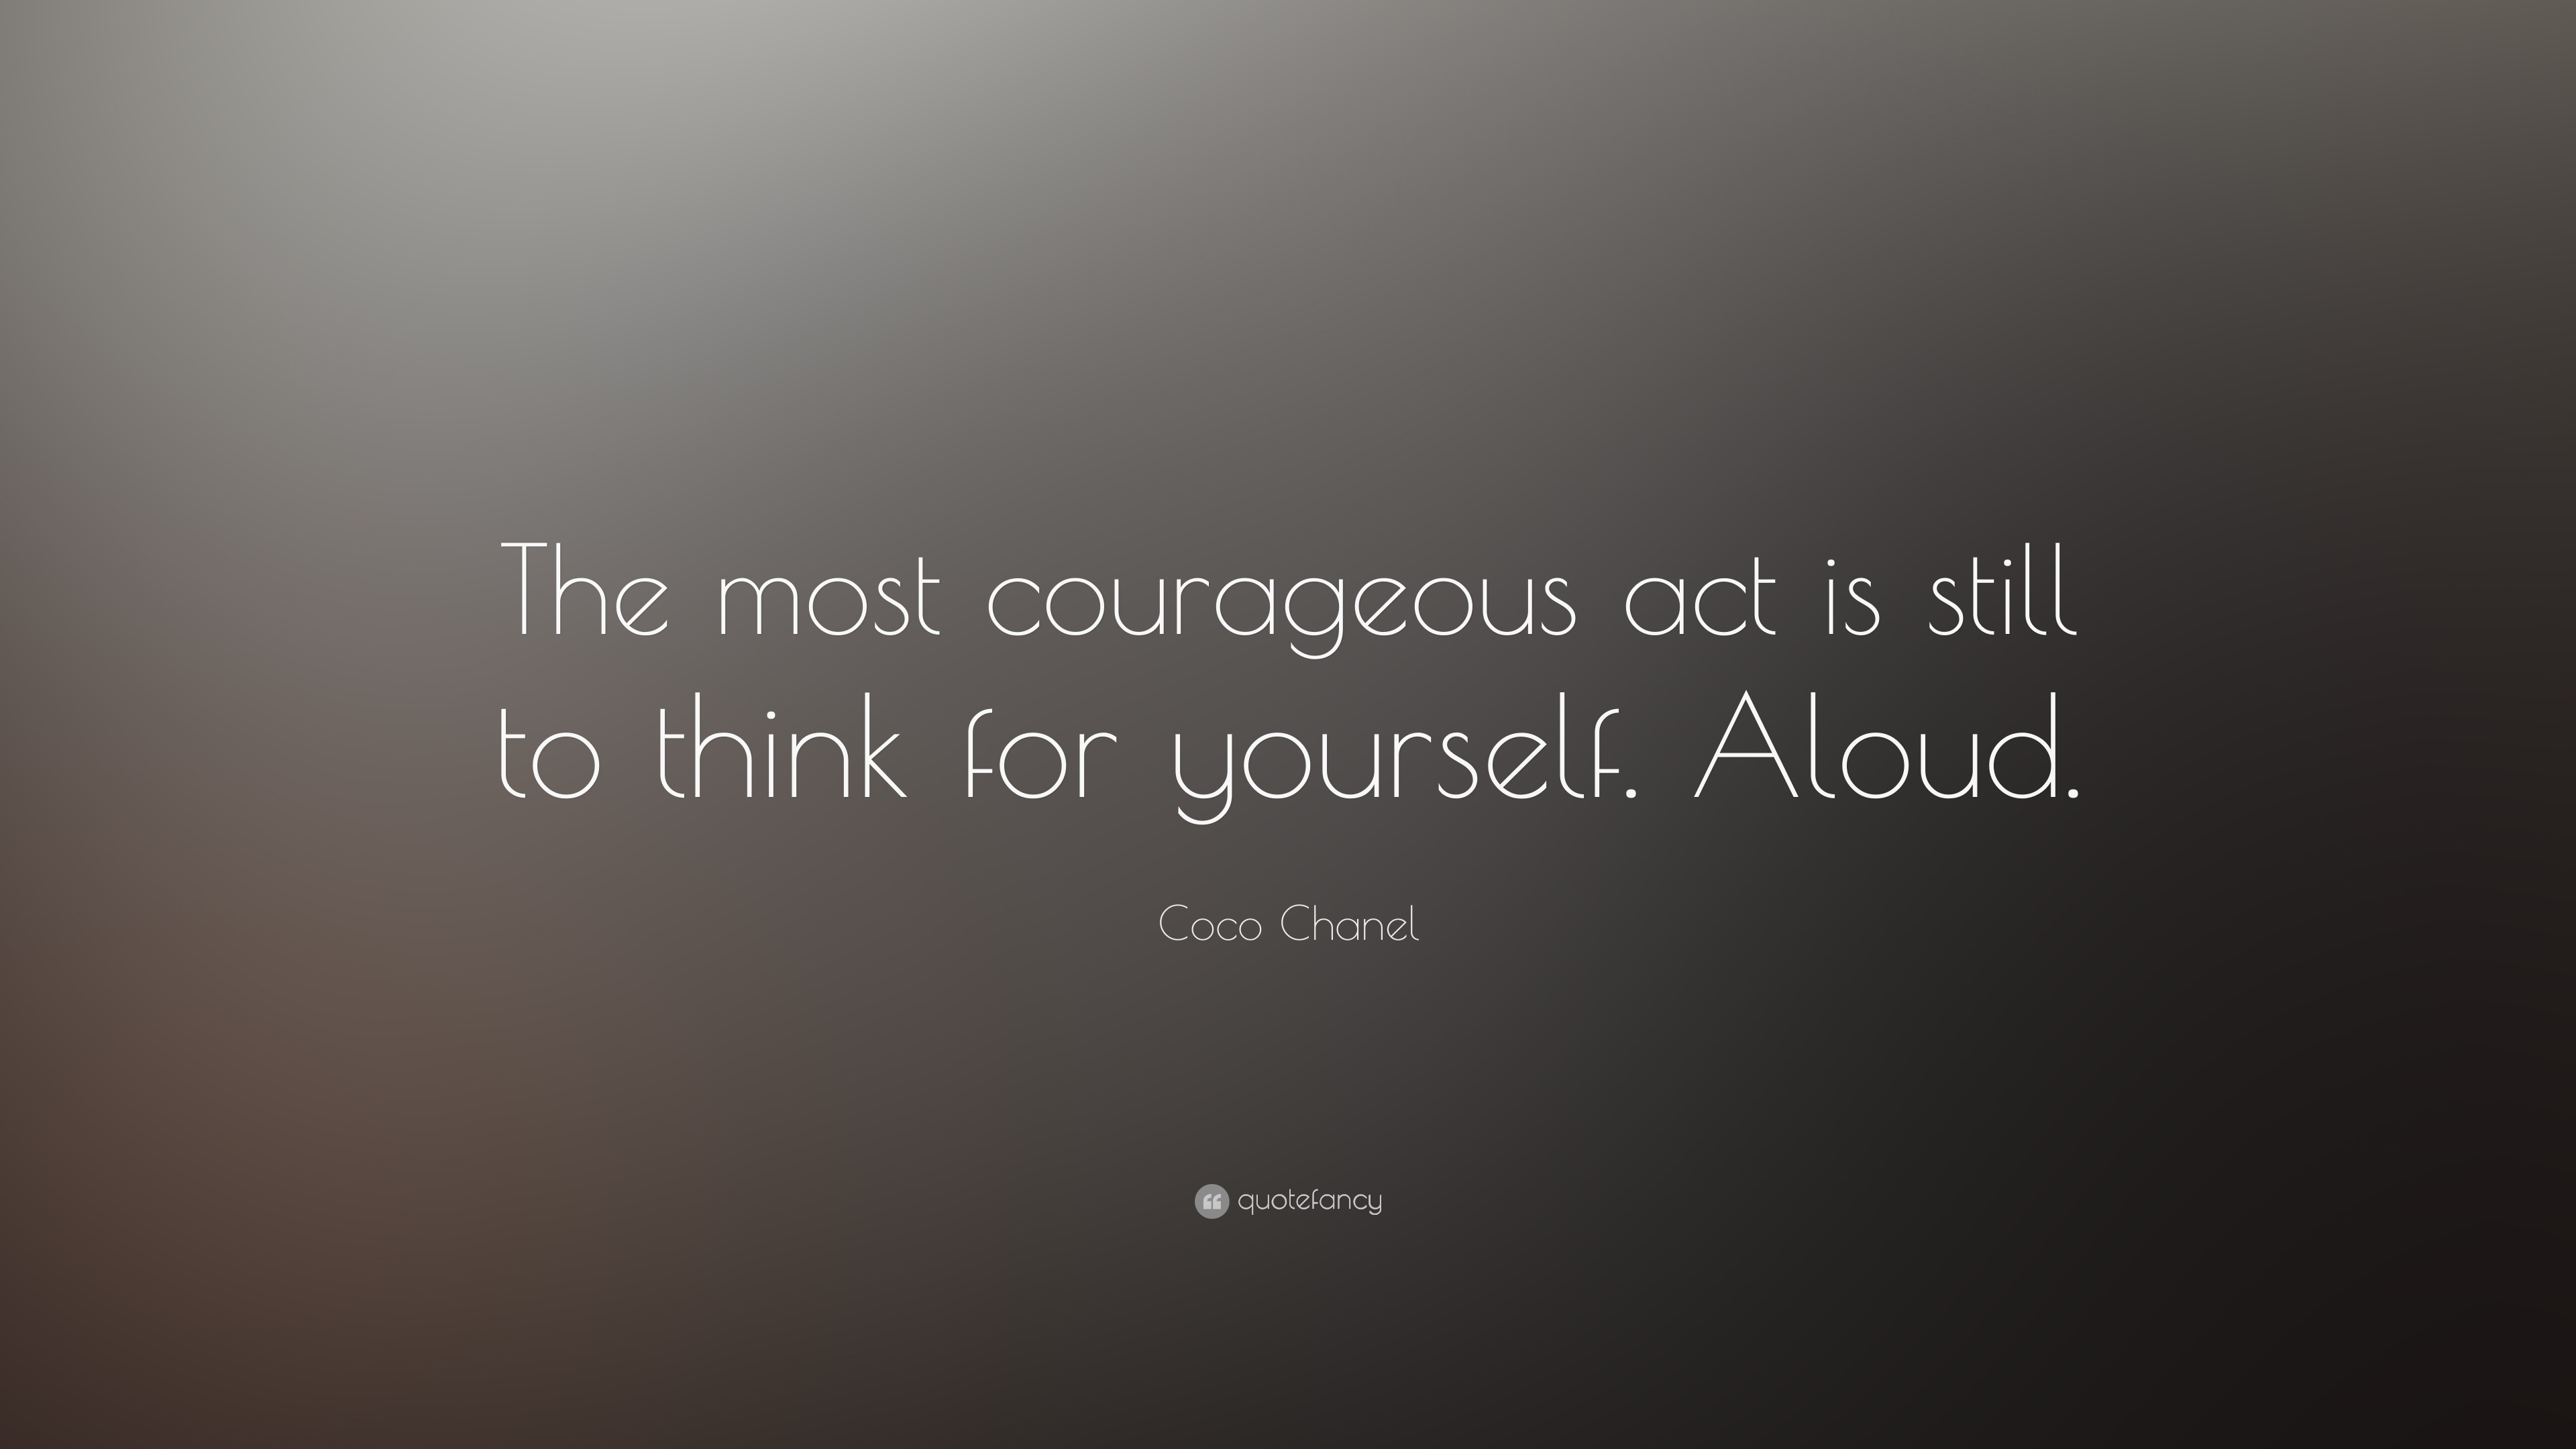 The most courageous act is still to think for yourself. Aloud' – 25 Coco Chanel quotes to live by